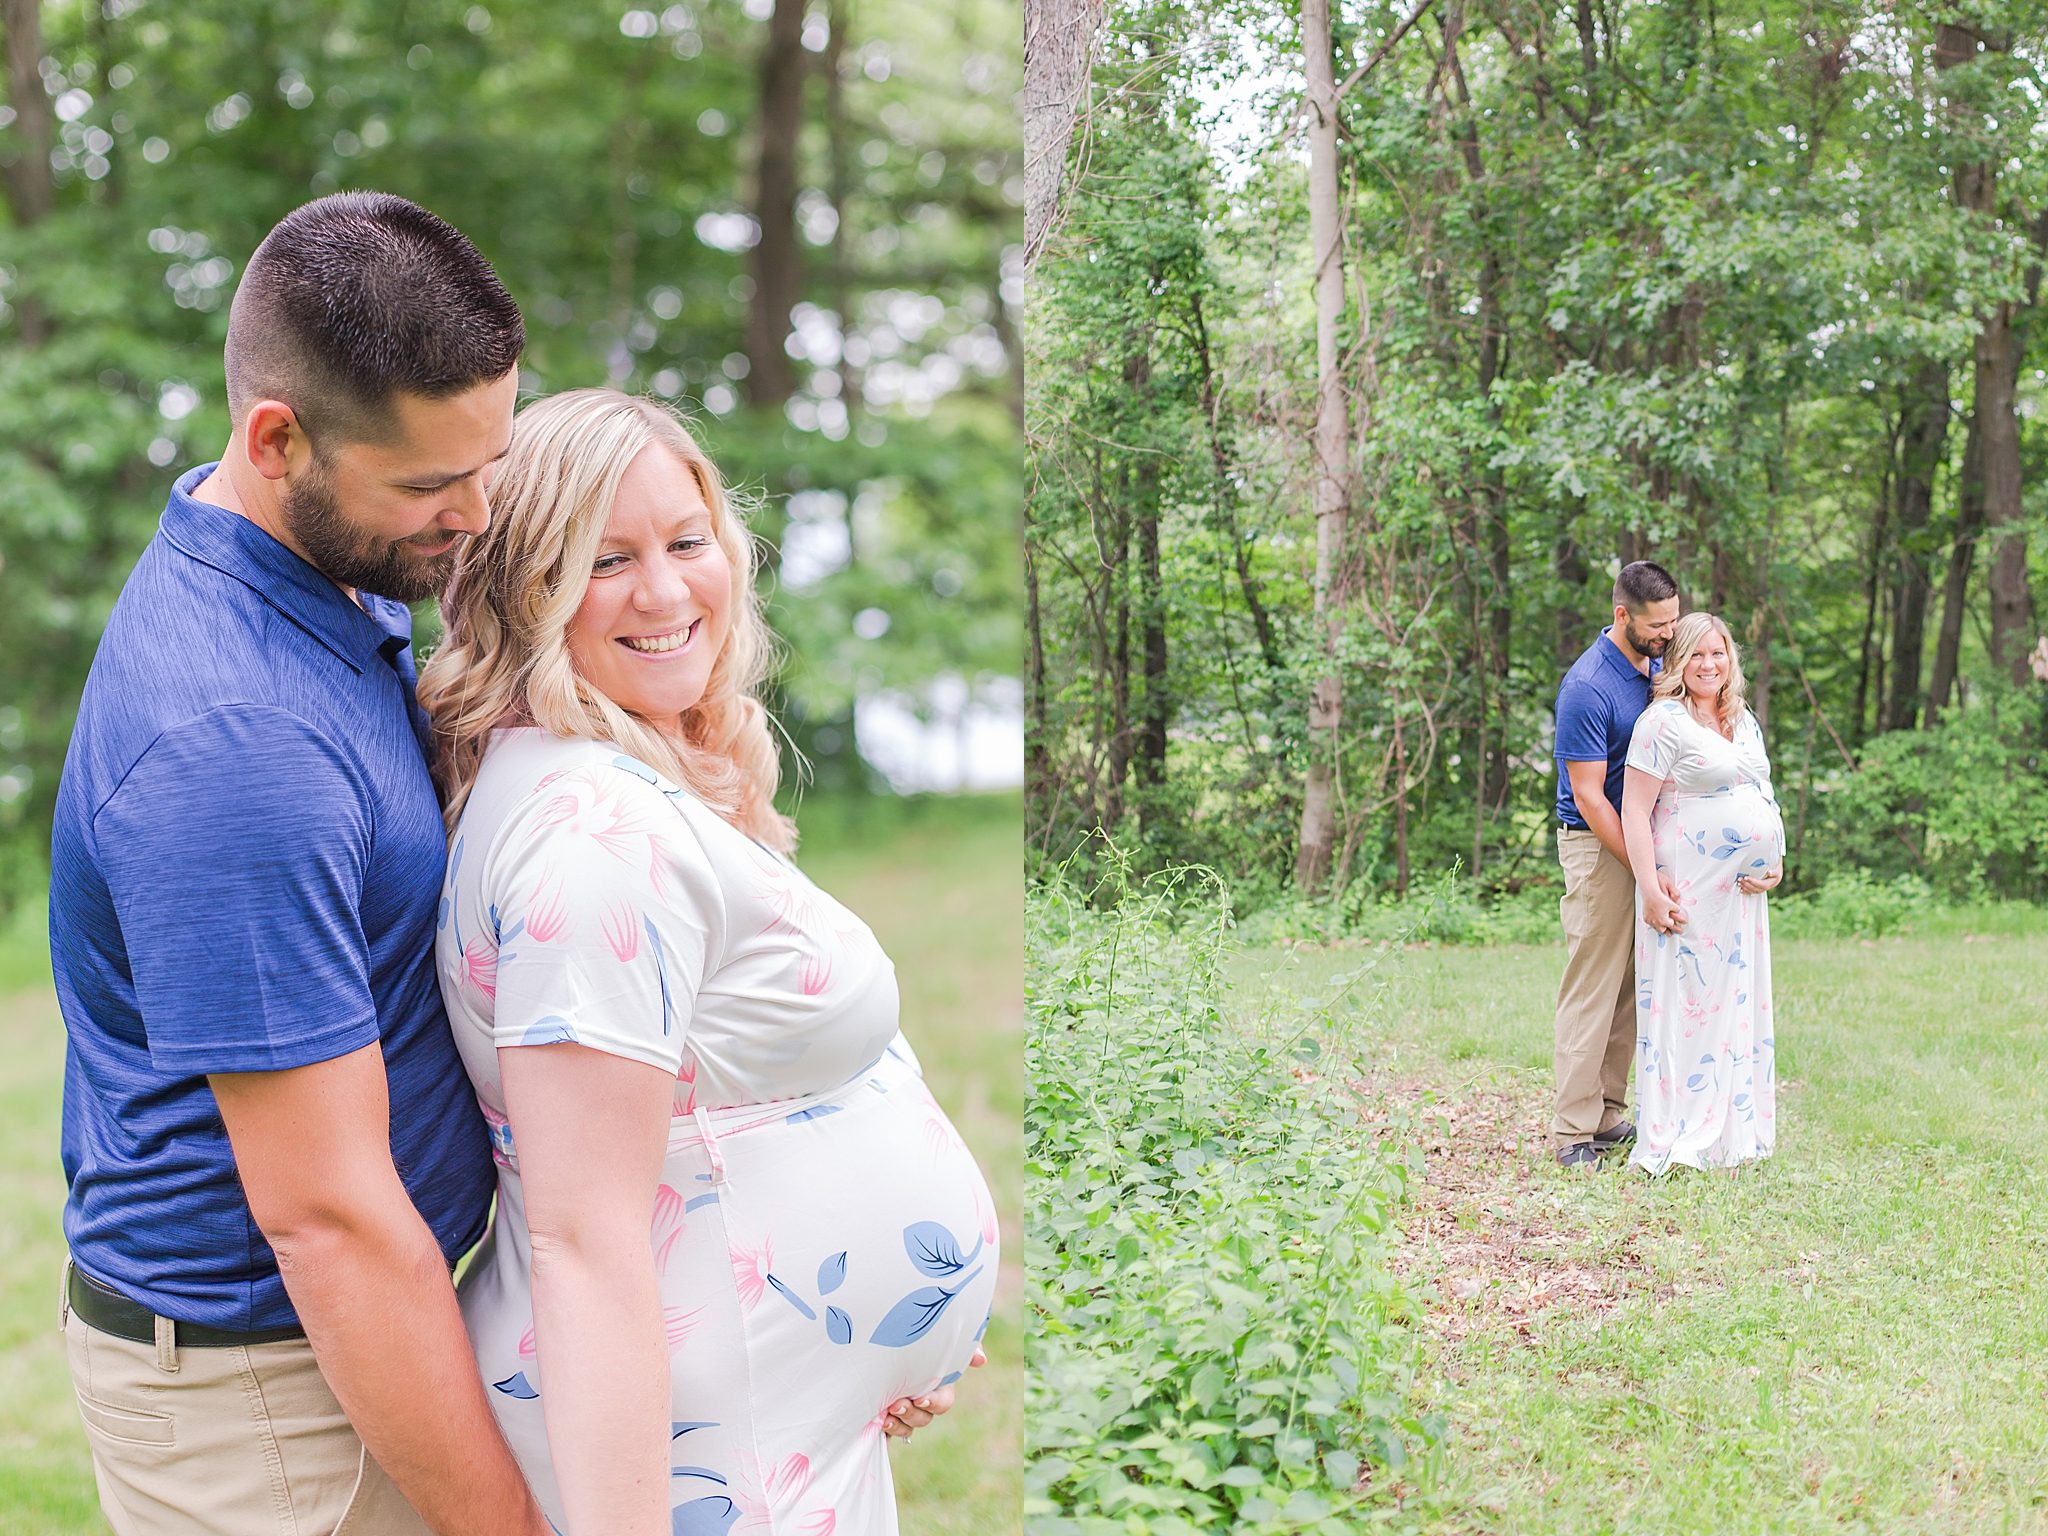 detroit-wedding-photographer-kensington-metro-park-maternity-keli-derek-by-courtney-carolyn-photography_0008.jpg